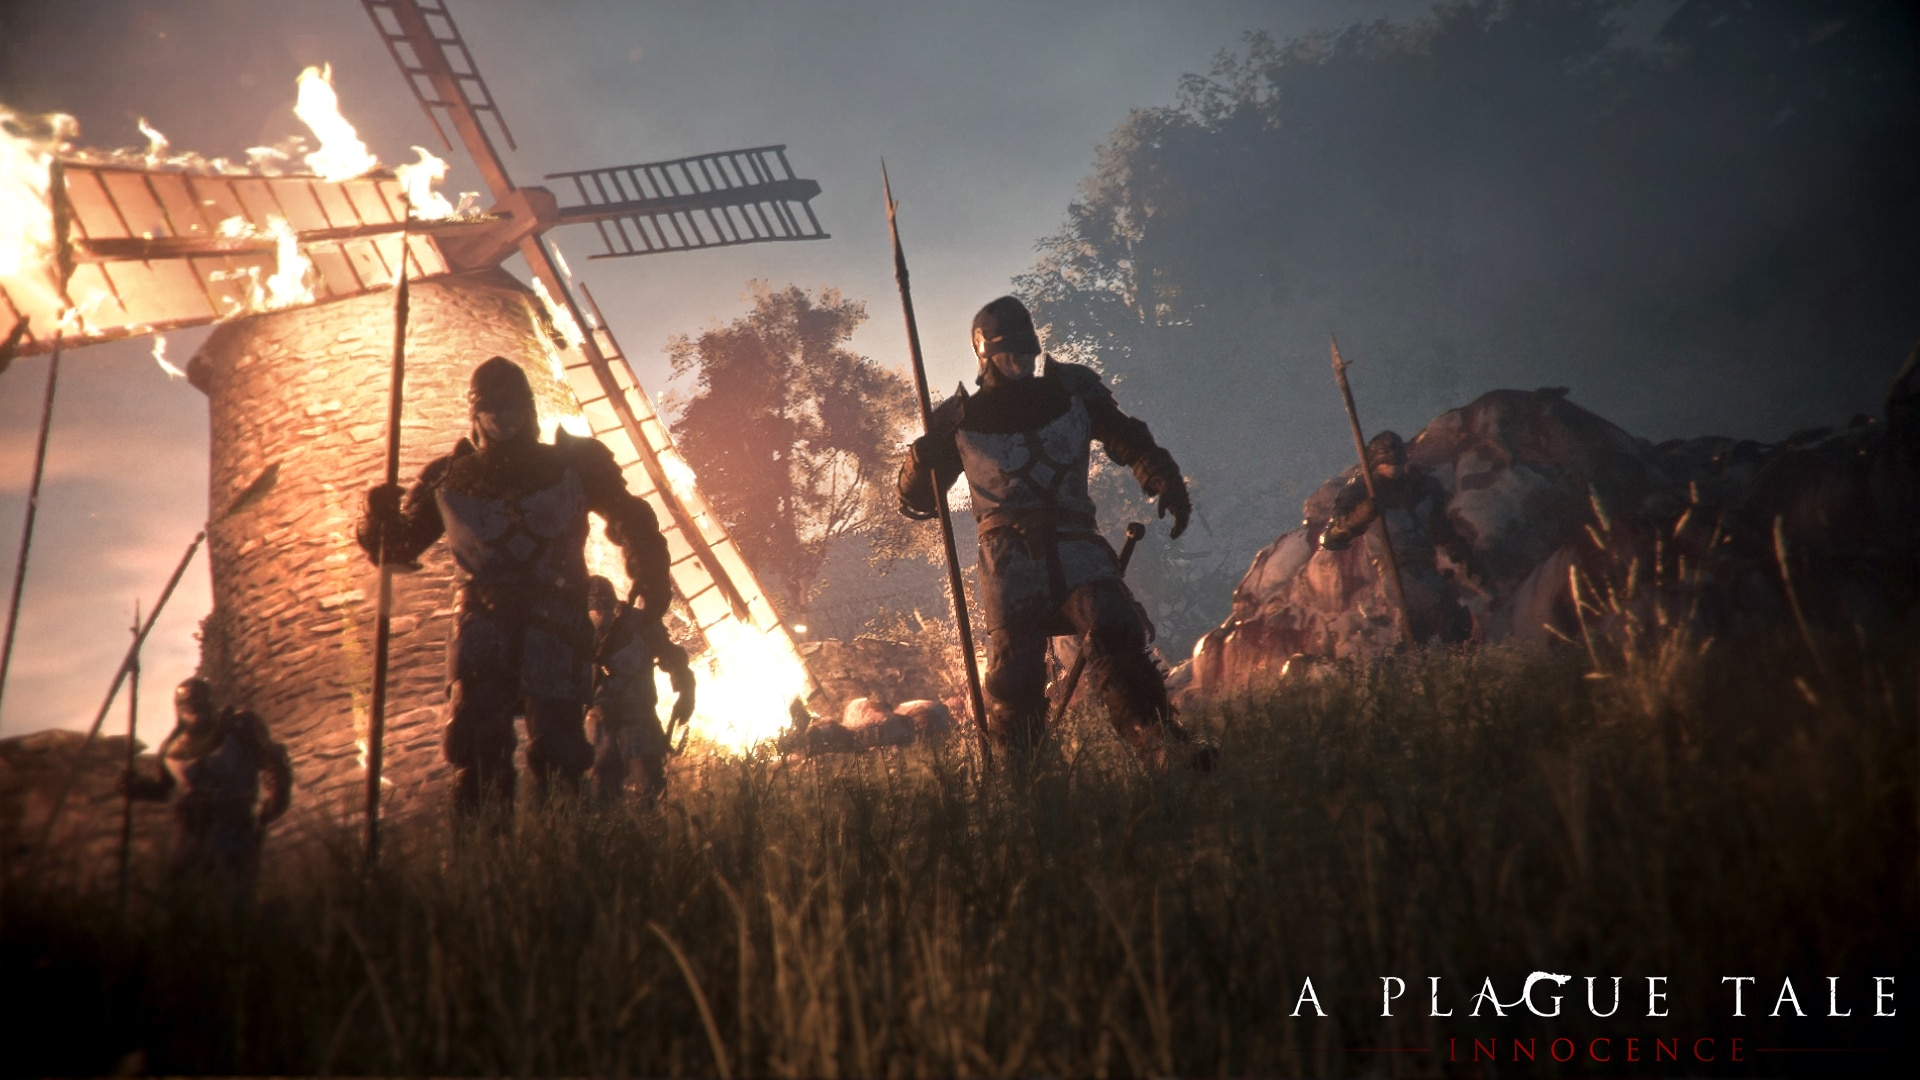 A Plague Tale Innocence 04 - E3 2018: Getting Down With The Sickness In A PLAGUE TALE: INNOCENCE